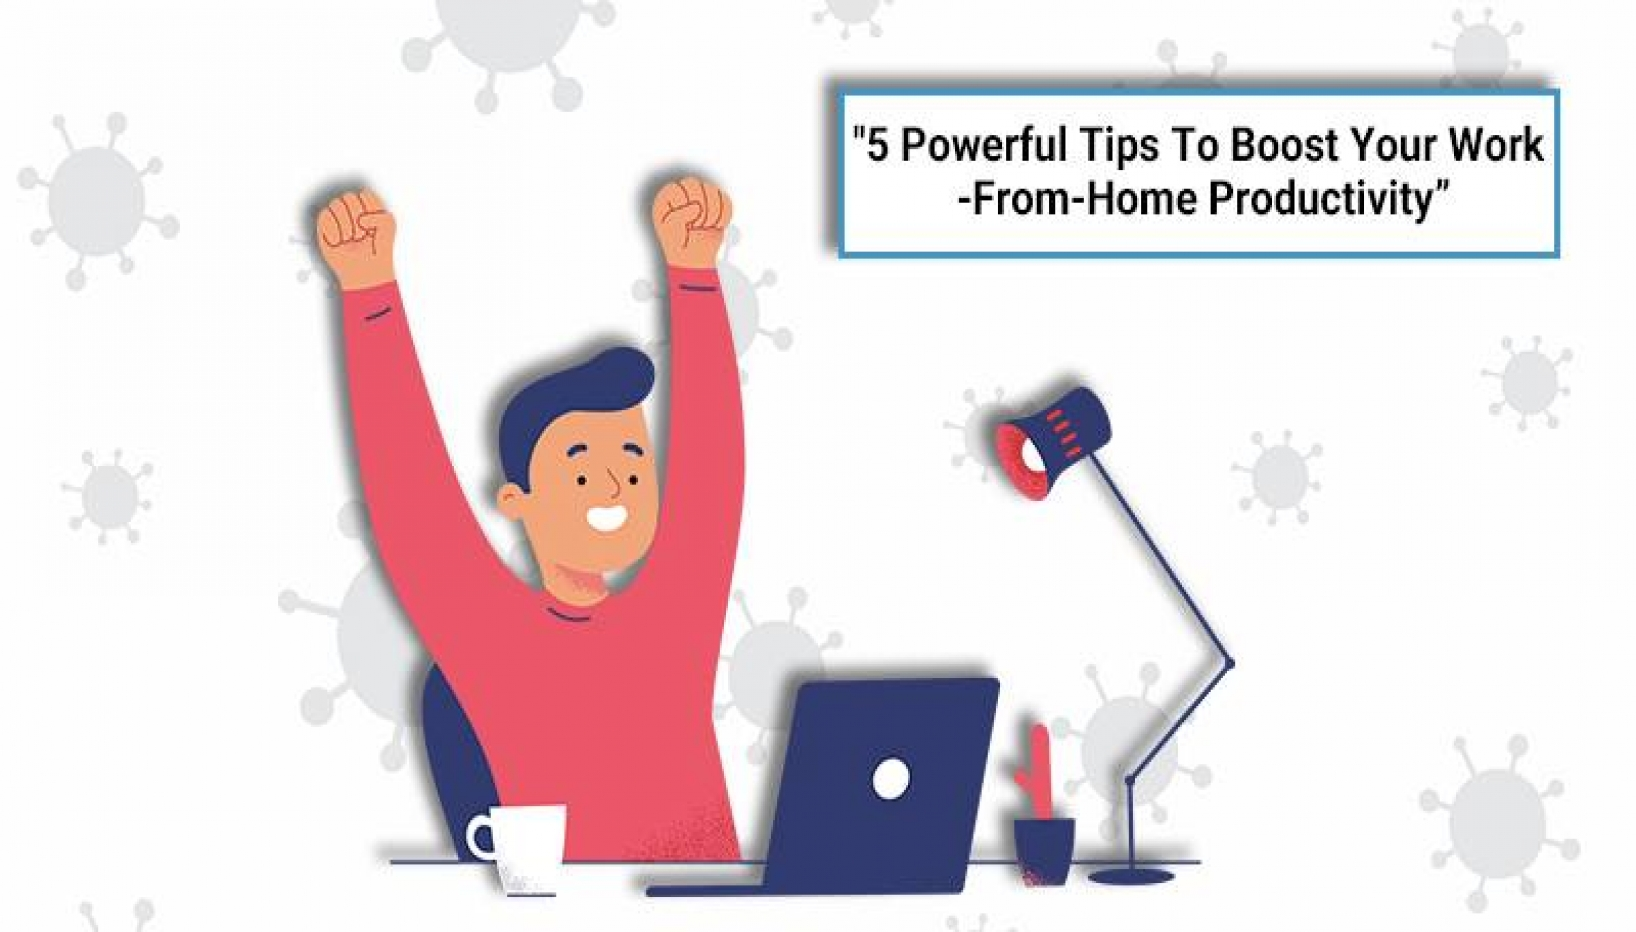 How To Boost Your Work-From-Home Productivity During Coronavirus Lockdown